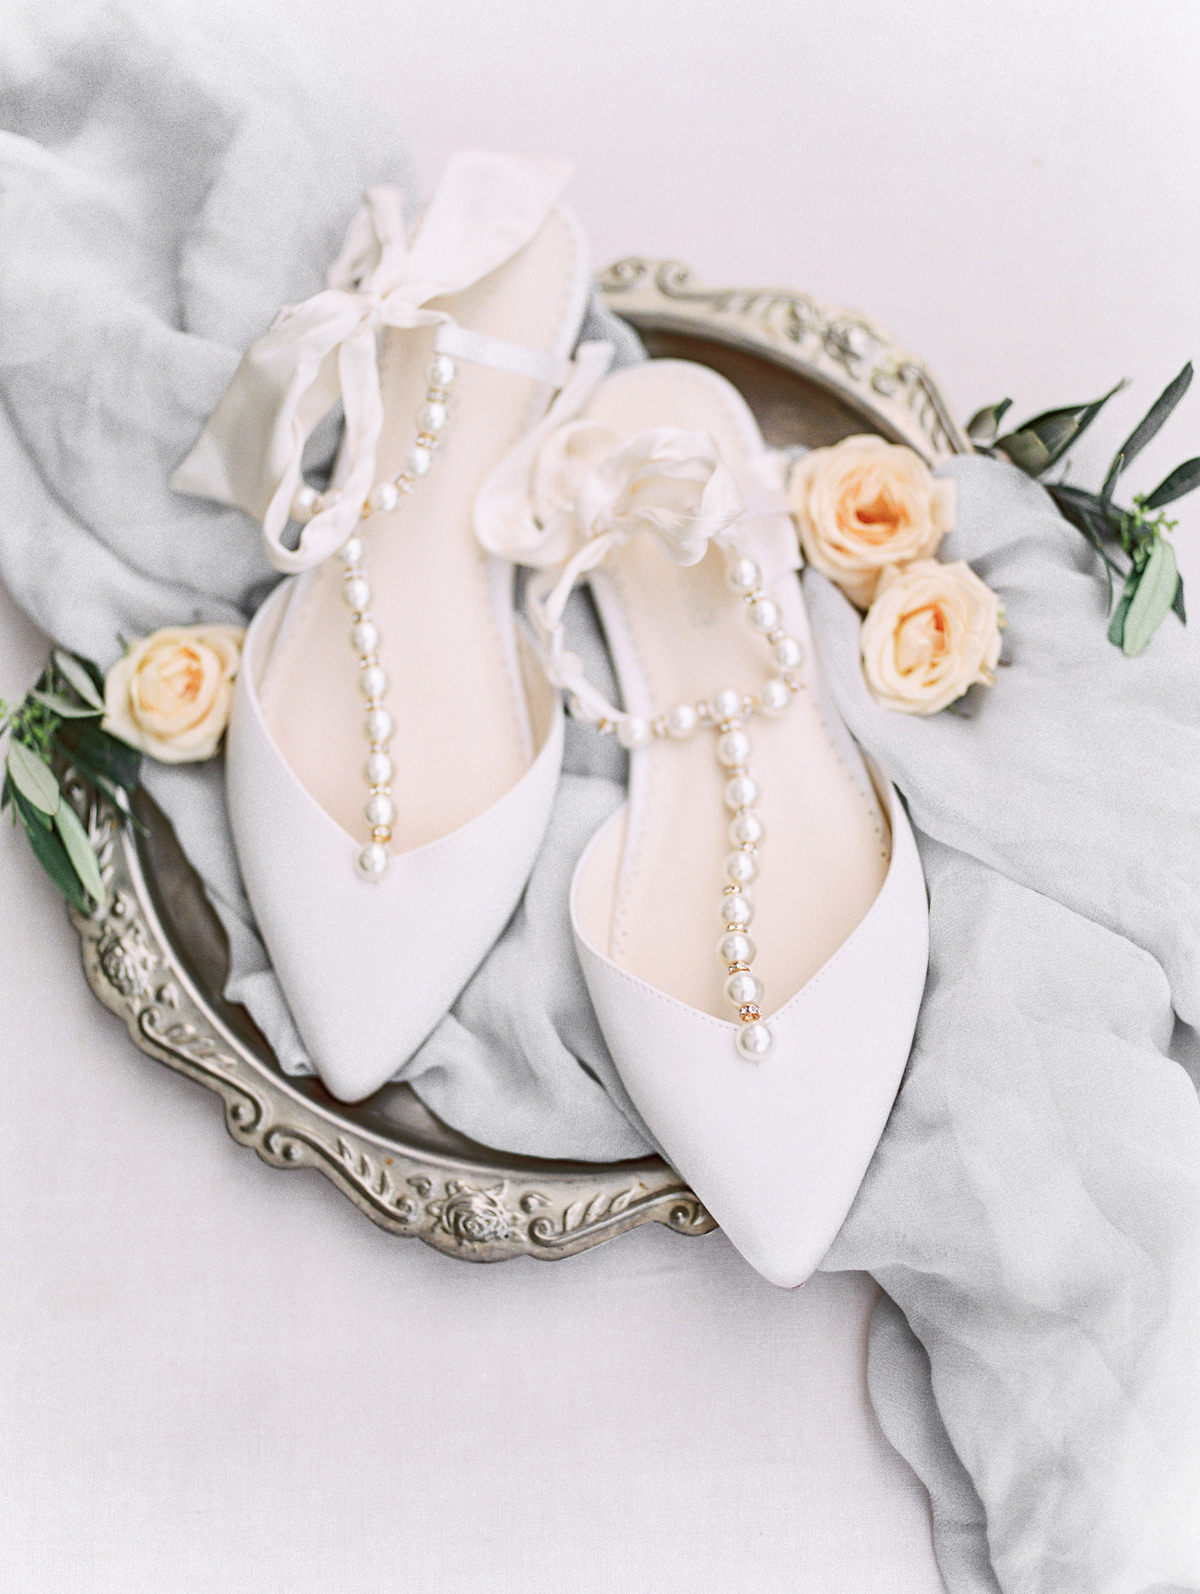 saghar ben wedding accessories brides shoes